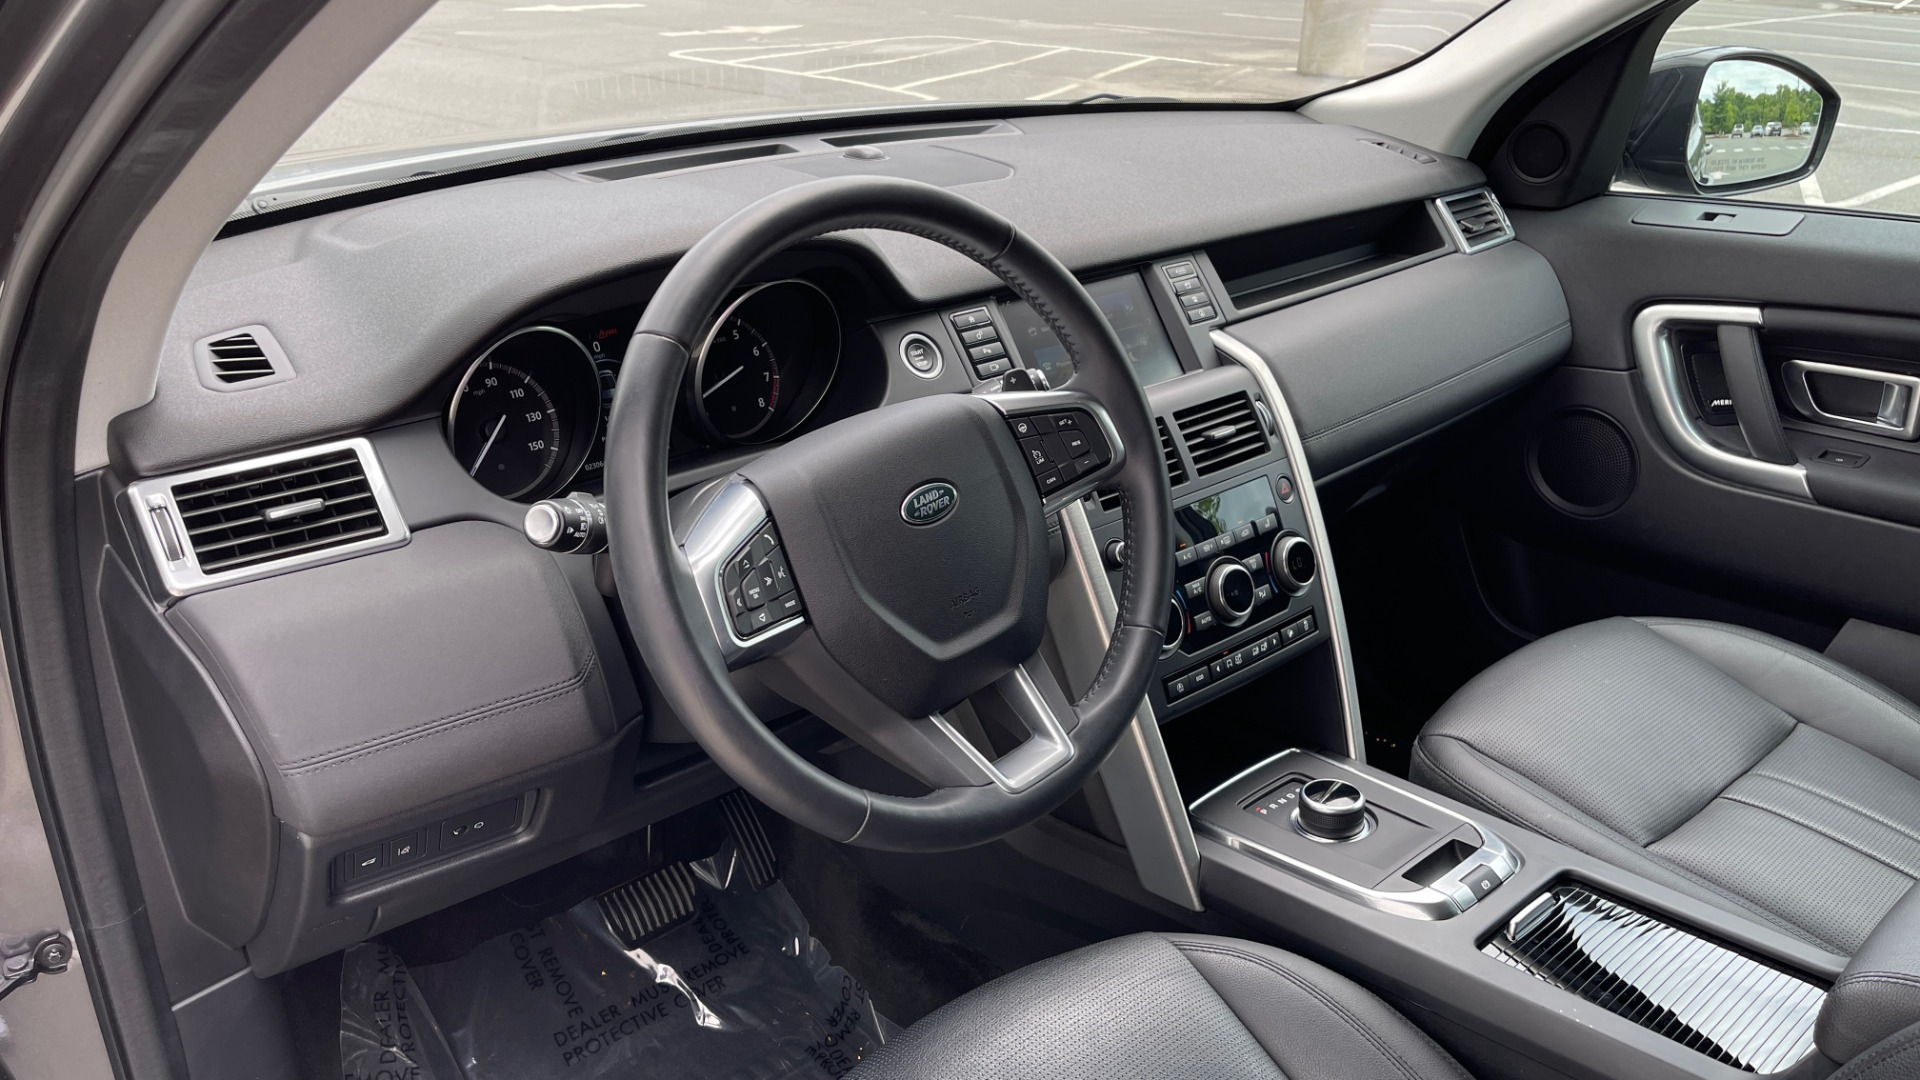 Used 2018 Land Rover DISCOVERY SPORT HSE 4WD / NAV / PANO-ROOF / MERIDIAN SND / HTD STS / LANE ASST / REARVIEW for sale $34,995 at Formula Imports in Charlotte NC 28227 37